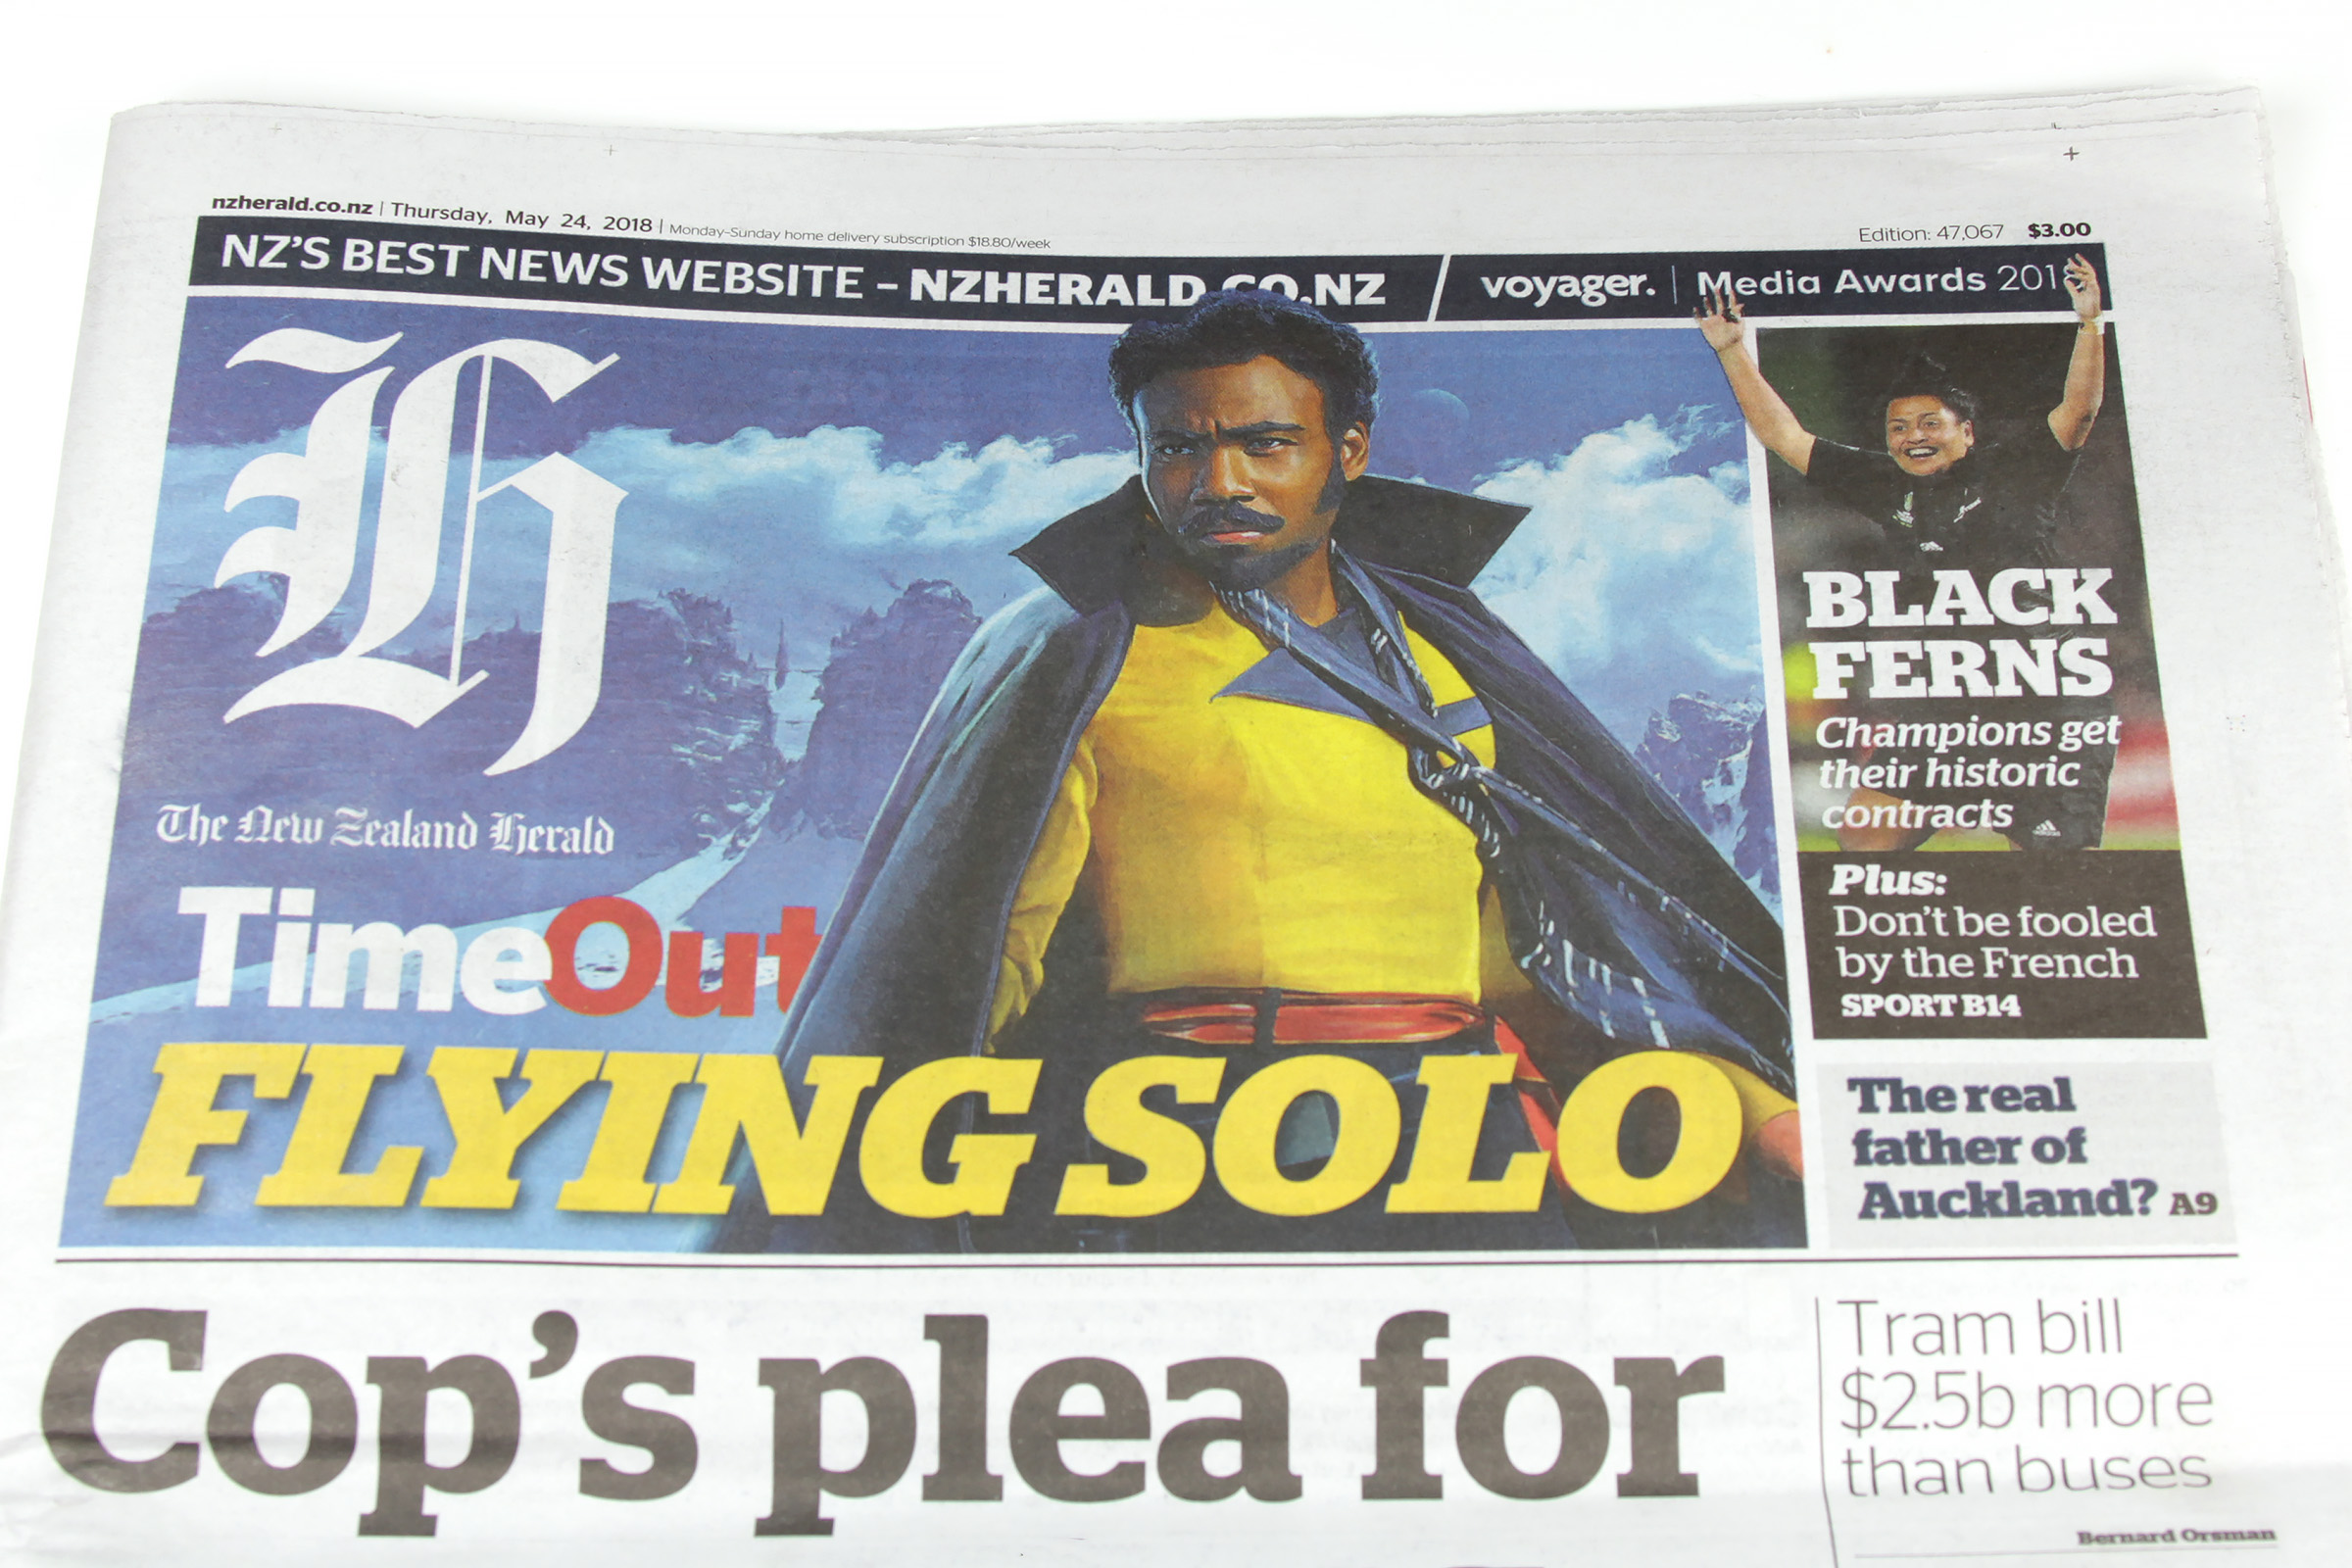 Solo: A Star Wars Story - NZ Herald 24 May 2018